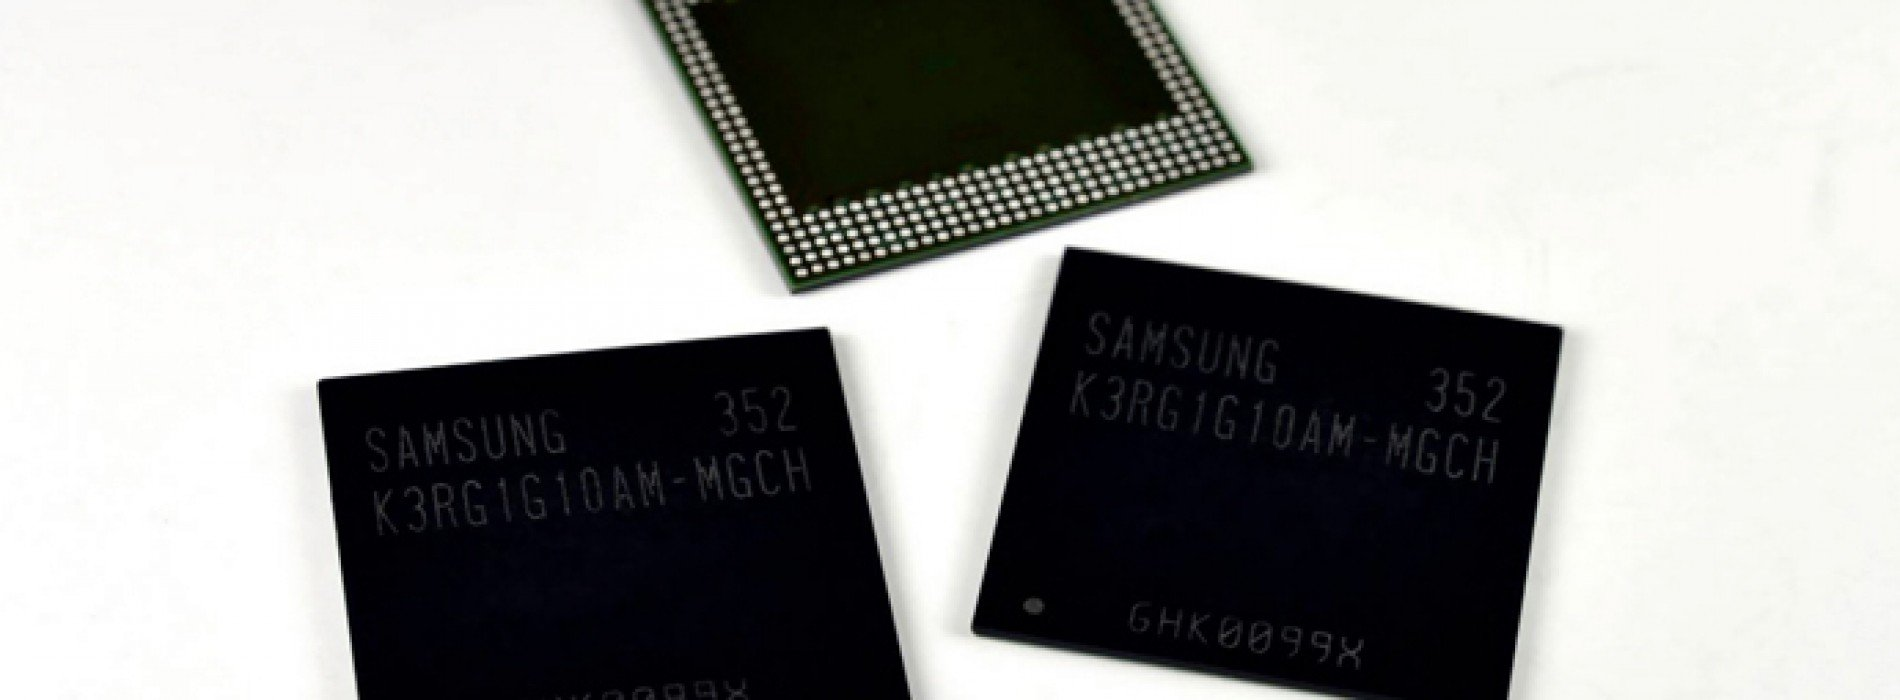 Samsung intros 8Gb LPDDR4 Mobile DRAM for next-gen smartphones